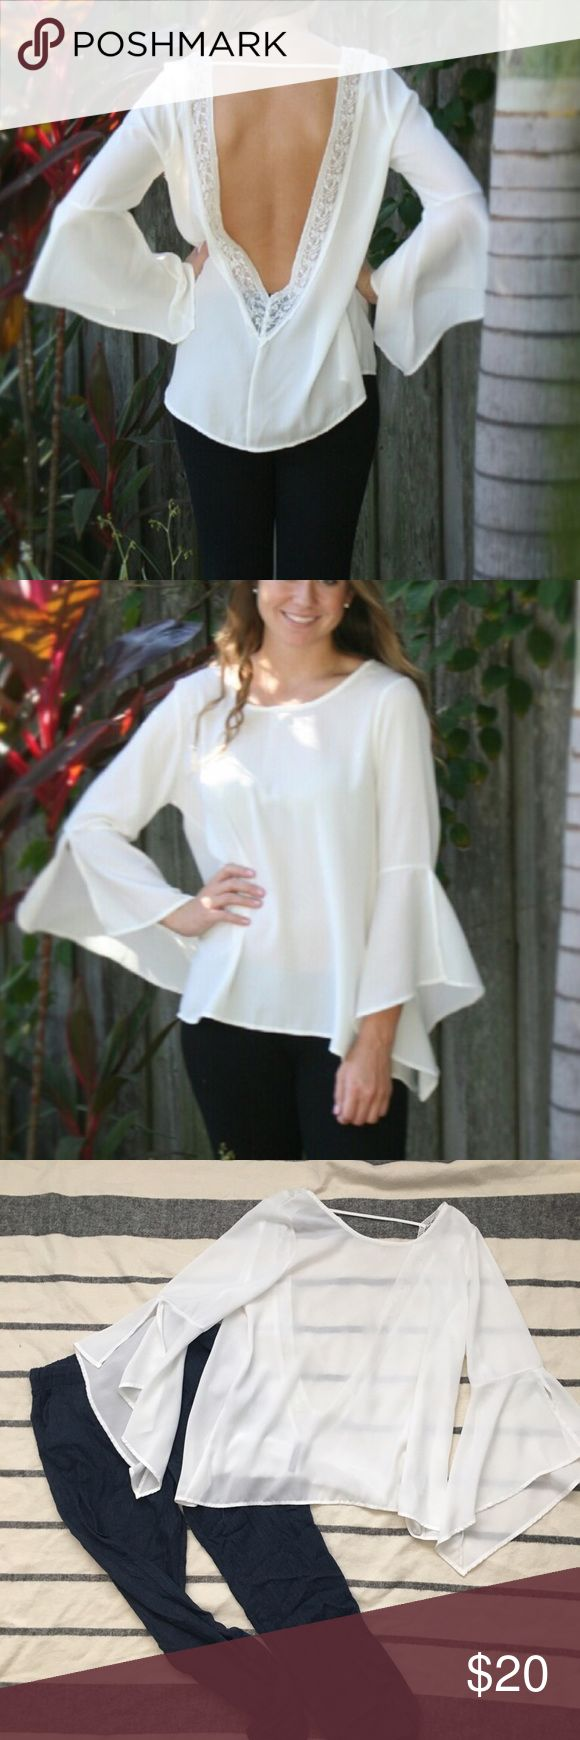 Open Back Bell Sleeve Blouse This top is perfect for summer! In good condition, only worn a few times. This top is so unique, it has a big open back with delicate lace trim, and trendy bell sleeves. You'll definitely want to wear a sticky bra or pretty bralette with this since it is somewhat shear. Not Lulus, but a similar boutique  👋 PLEASE READ 👋 - I accept reasonable offers unless noted - Lowballers will be ignored - ❌trades - ❌ 🅿️🅿️ - I don't discuss lowest price through the…